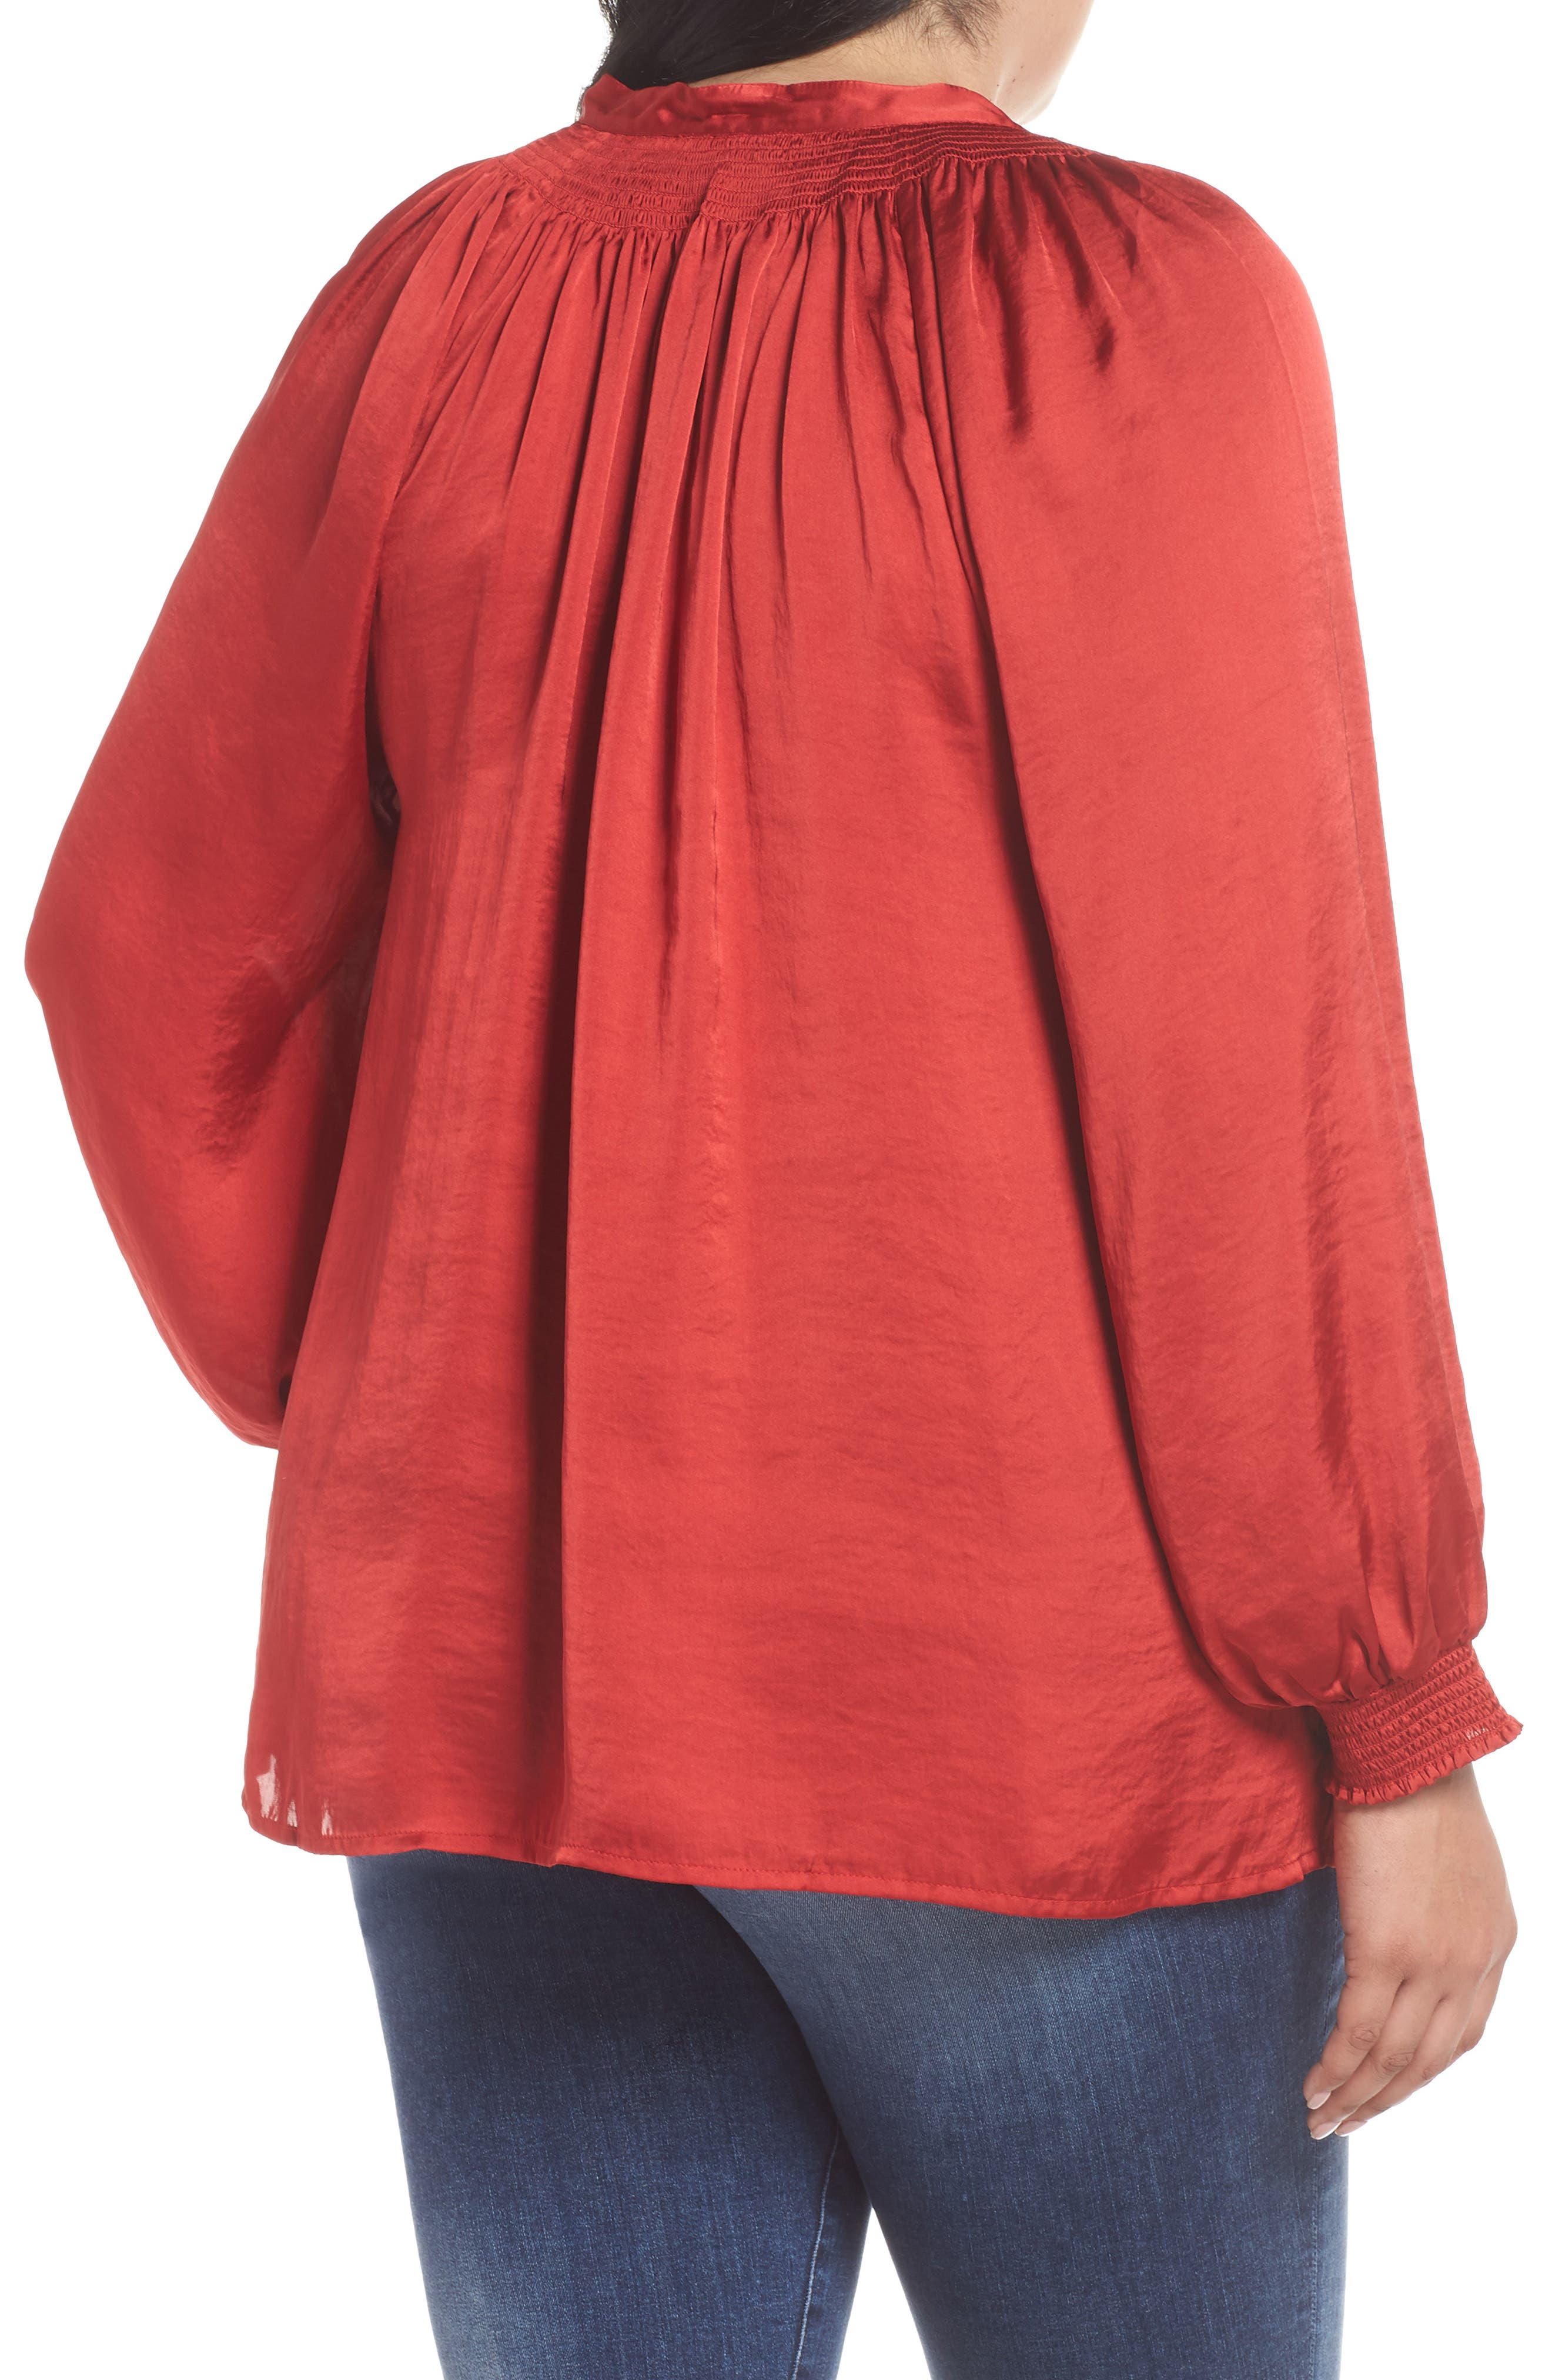 Satin Peasant Top,                             Alternate thumbnail 2, color,                             640